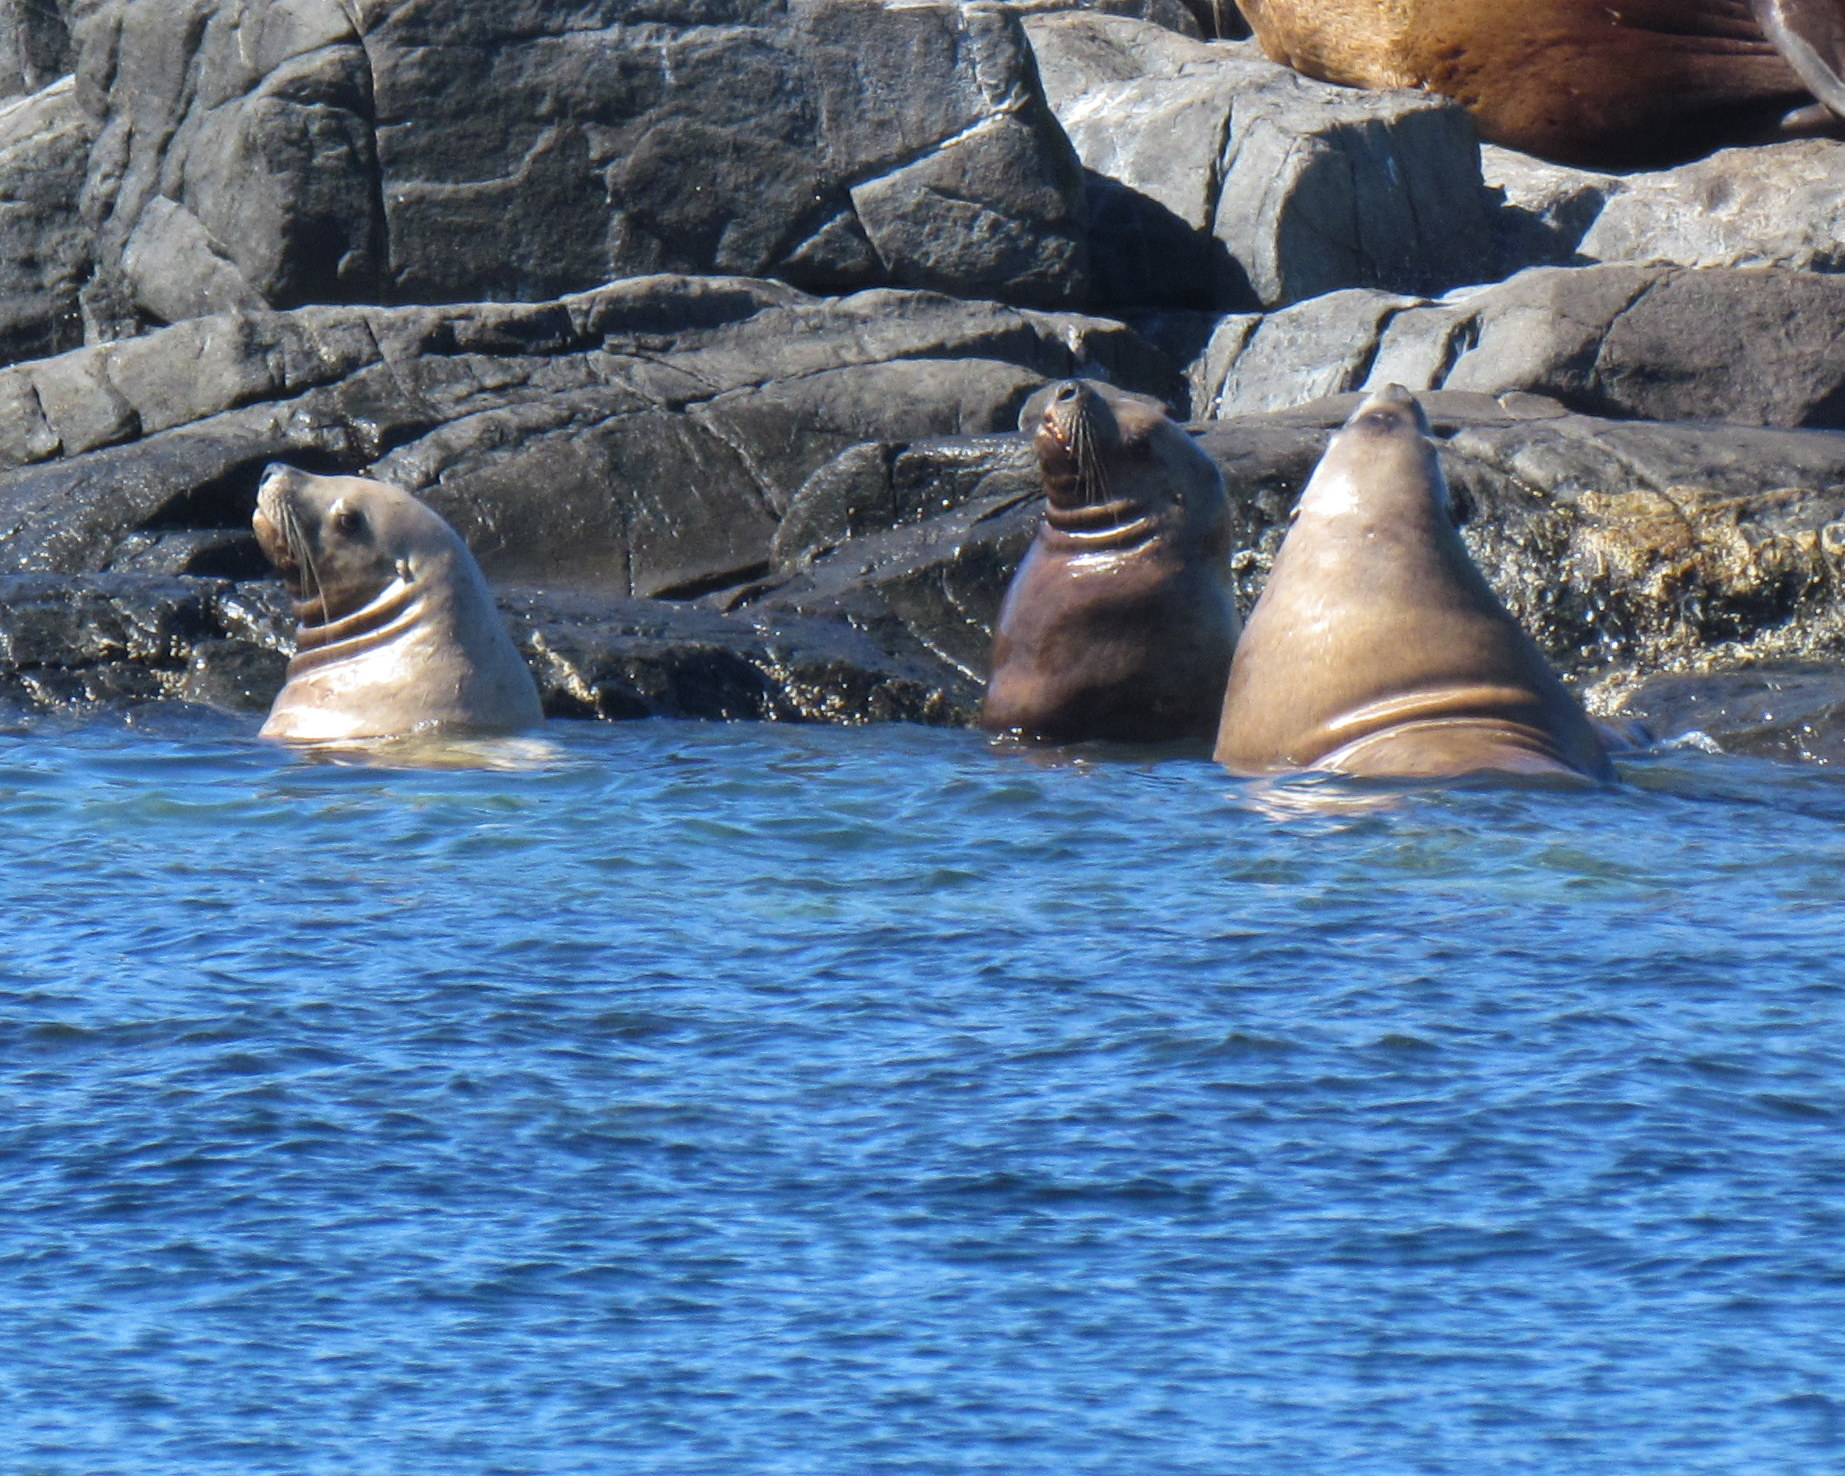 Sea Lions taking a dip in the cool waters